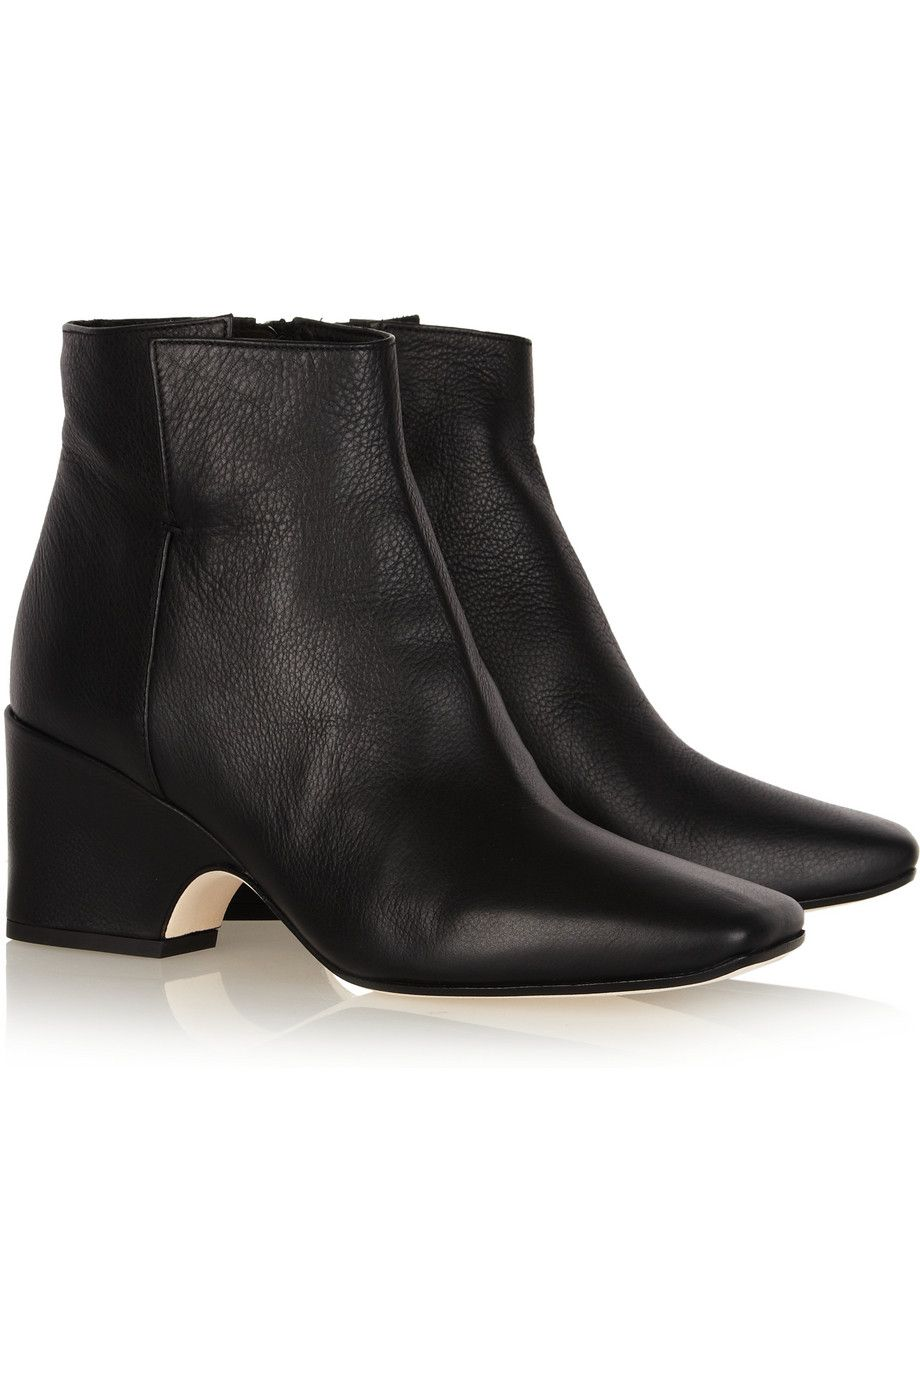 recommend sale online Calvin Klein Collection Leather Platform Booties marketable cheap price jorz6